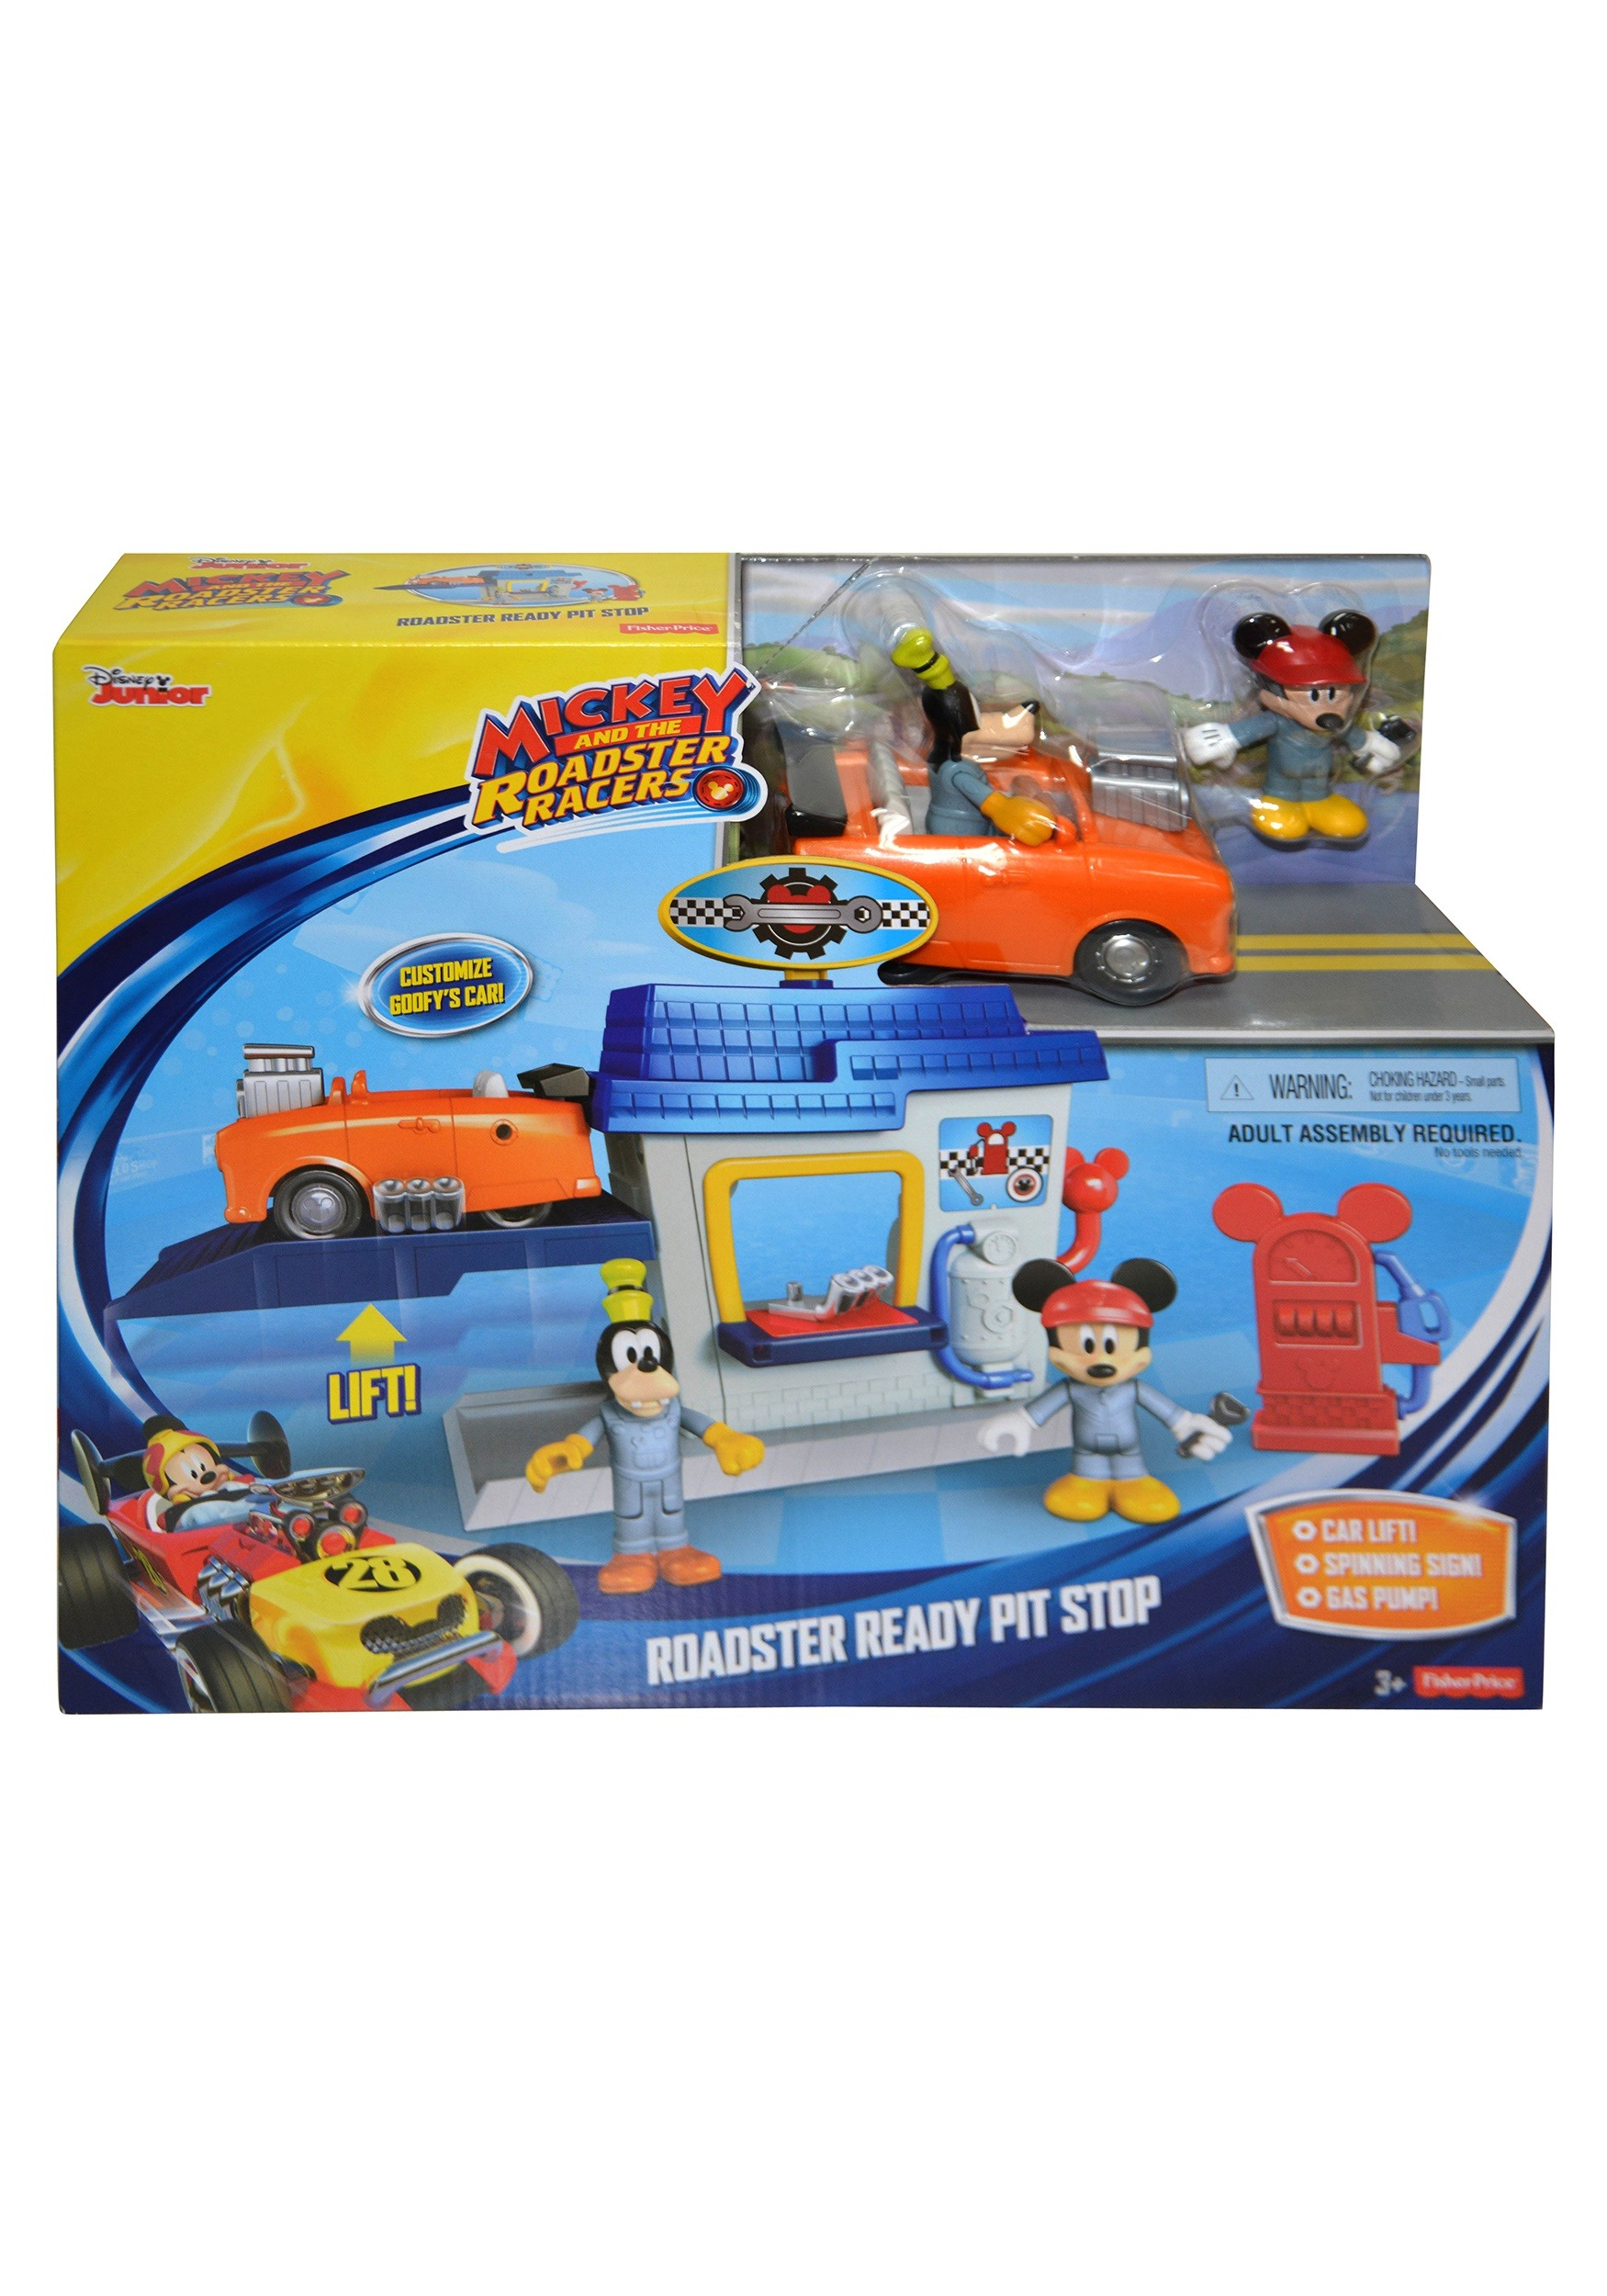 Disney Mickey and the Roadster Racers Fisher-Price Toys